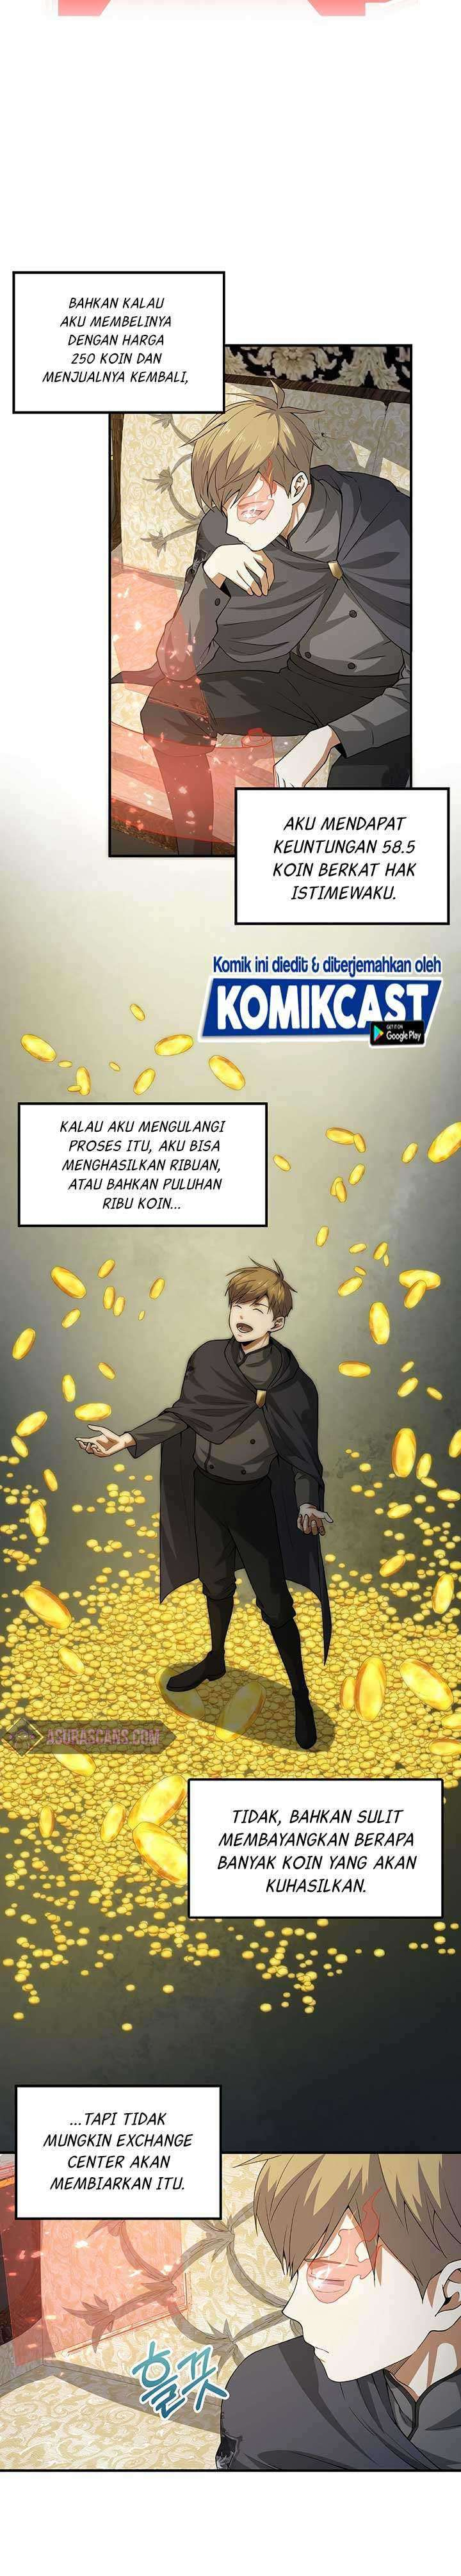 The Lord's Coins Aren't Decreasing Chapter 31